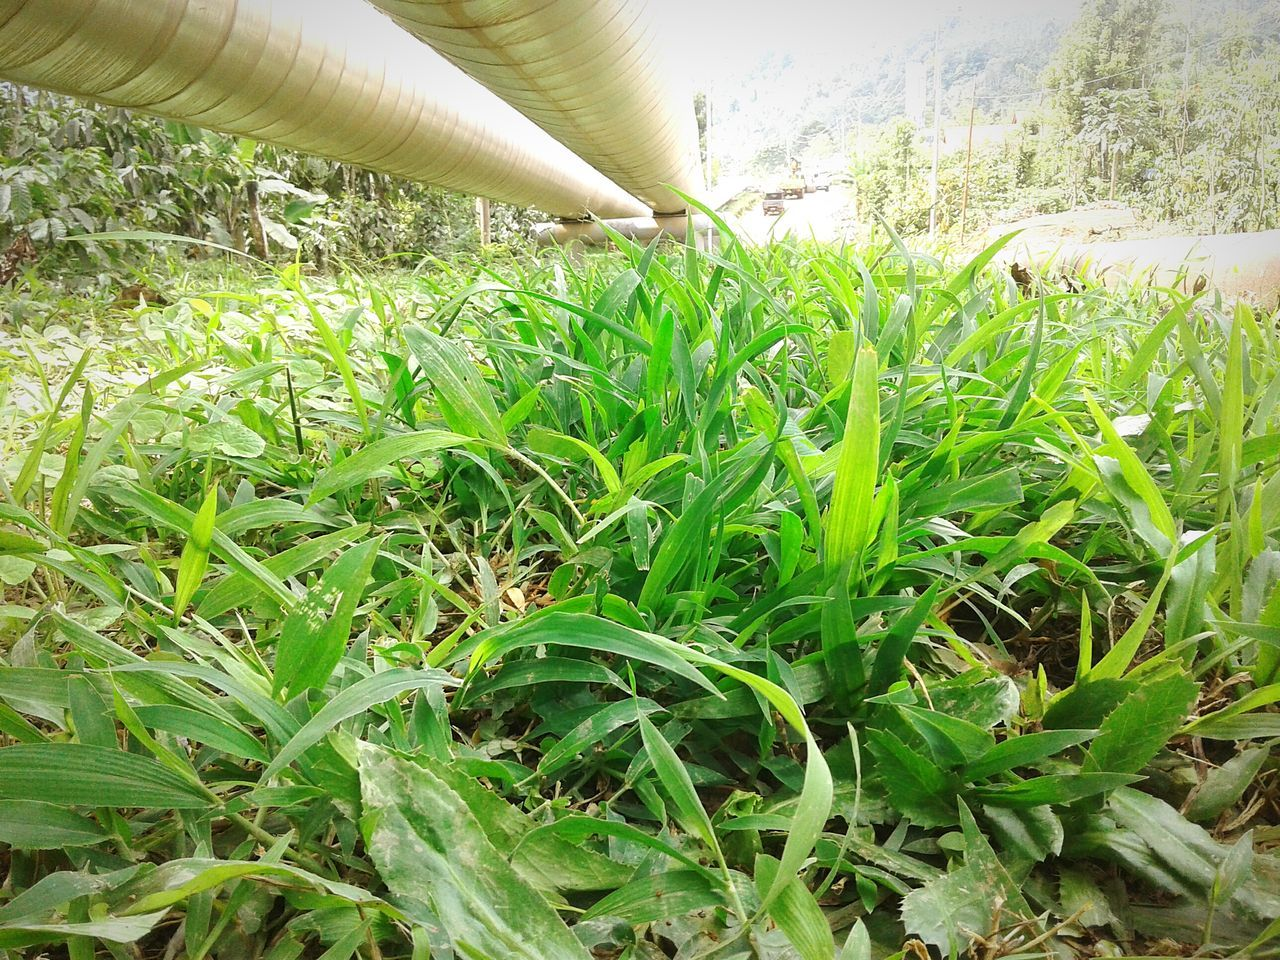 field, growth, green color, grass, day, nature, leaf, no people, agriculture, outdoors, close-up, beauty in nature